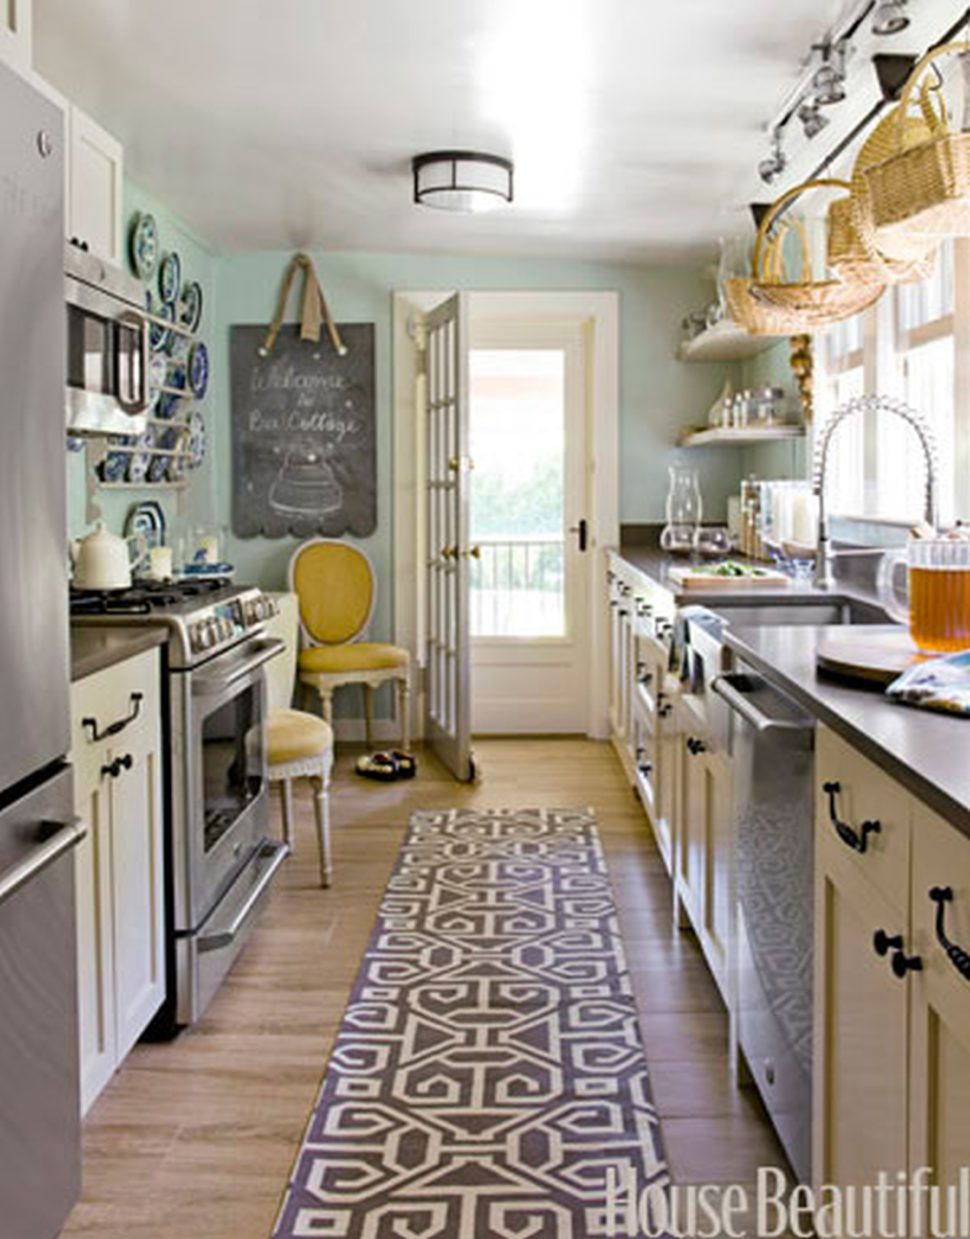 25 Best Small Kitchen Ideas and Designs